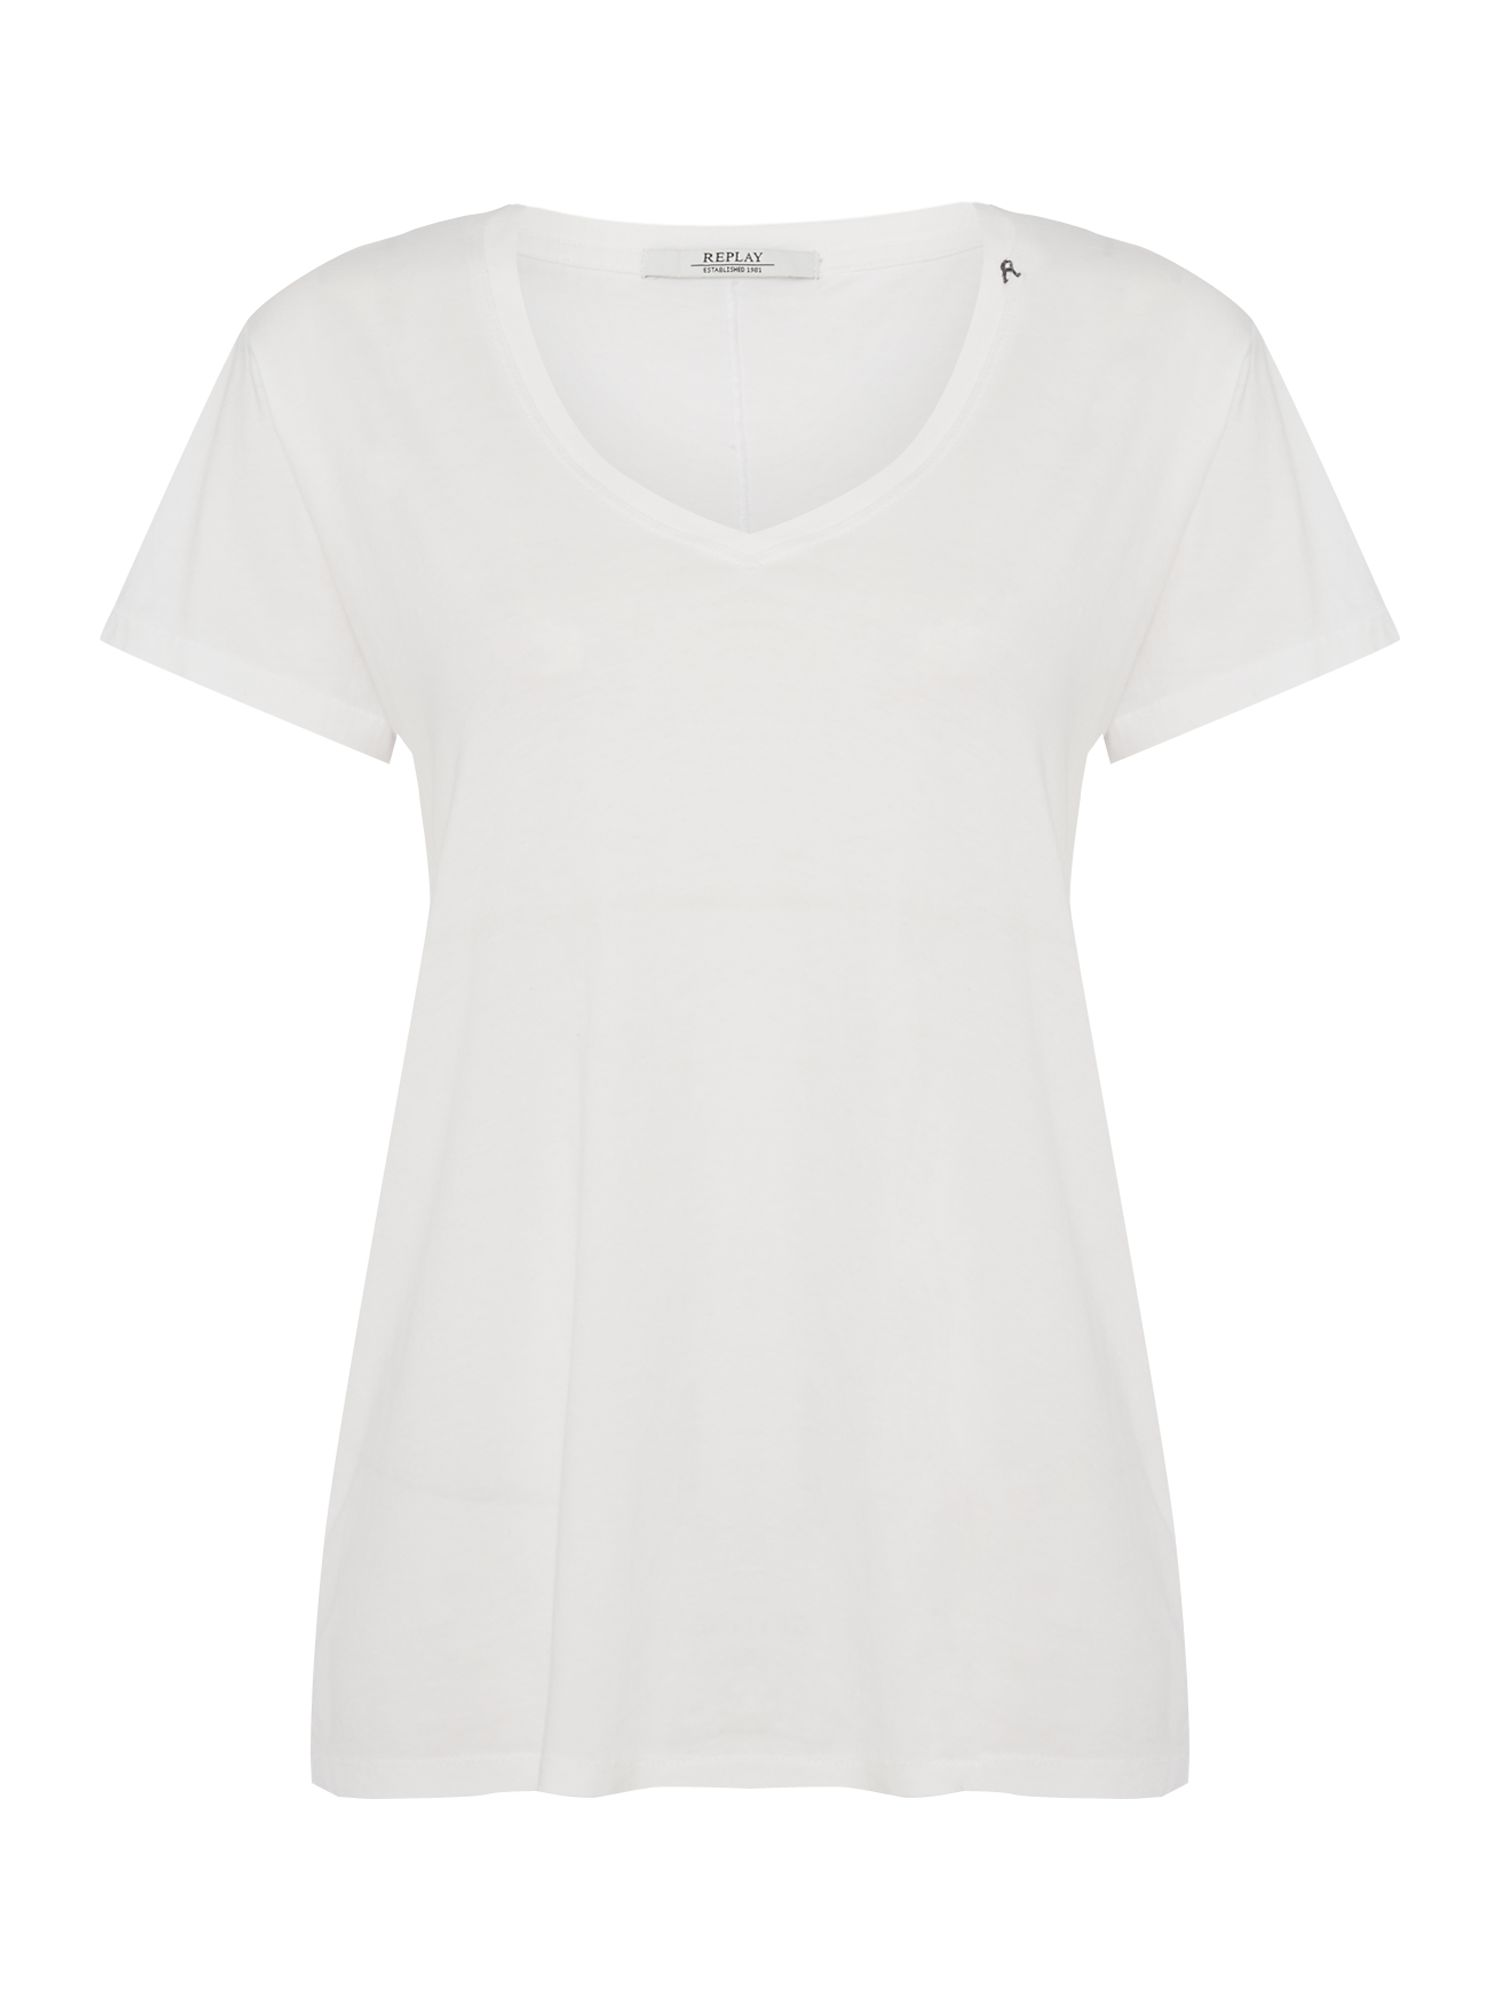 Replay Garment-Dyed Cotton T-Shirt, White